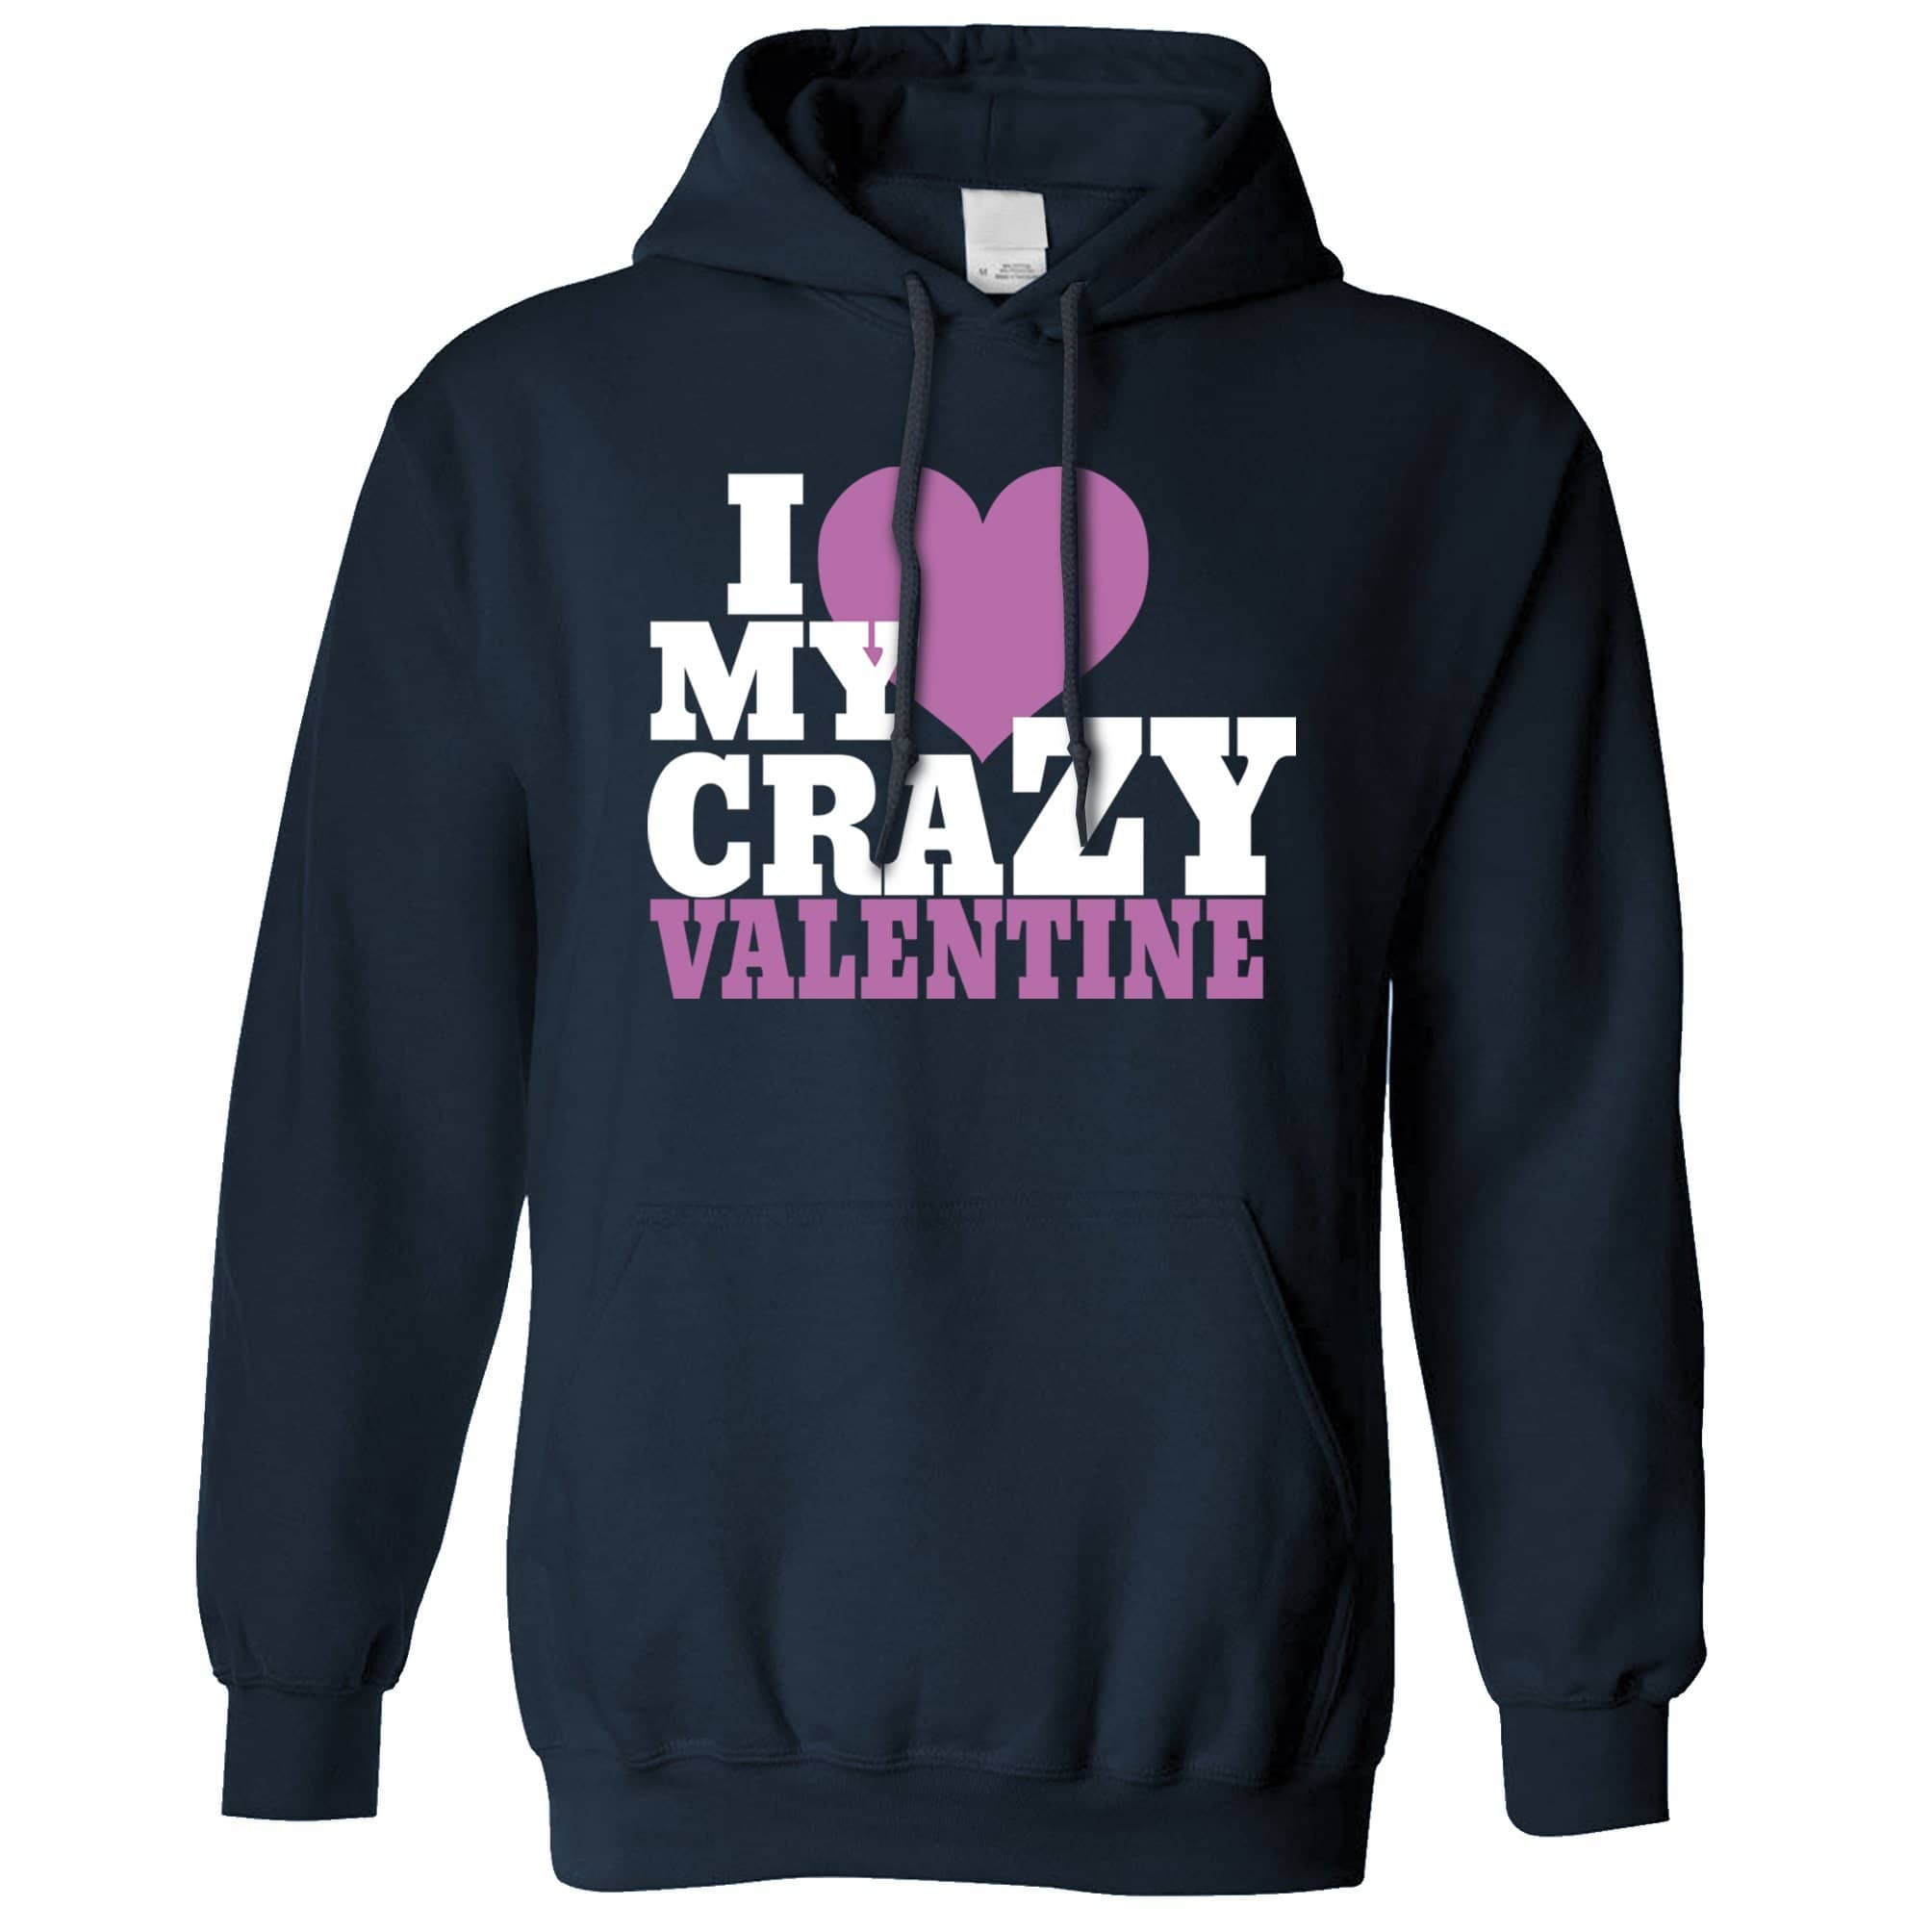 Couples Hoodie I Love My Crazy Valentine Hooded Jumper